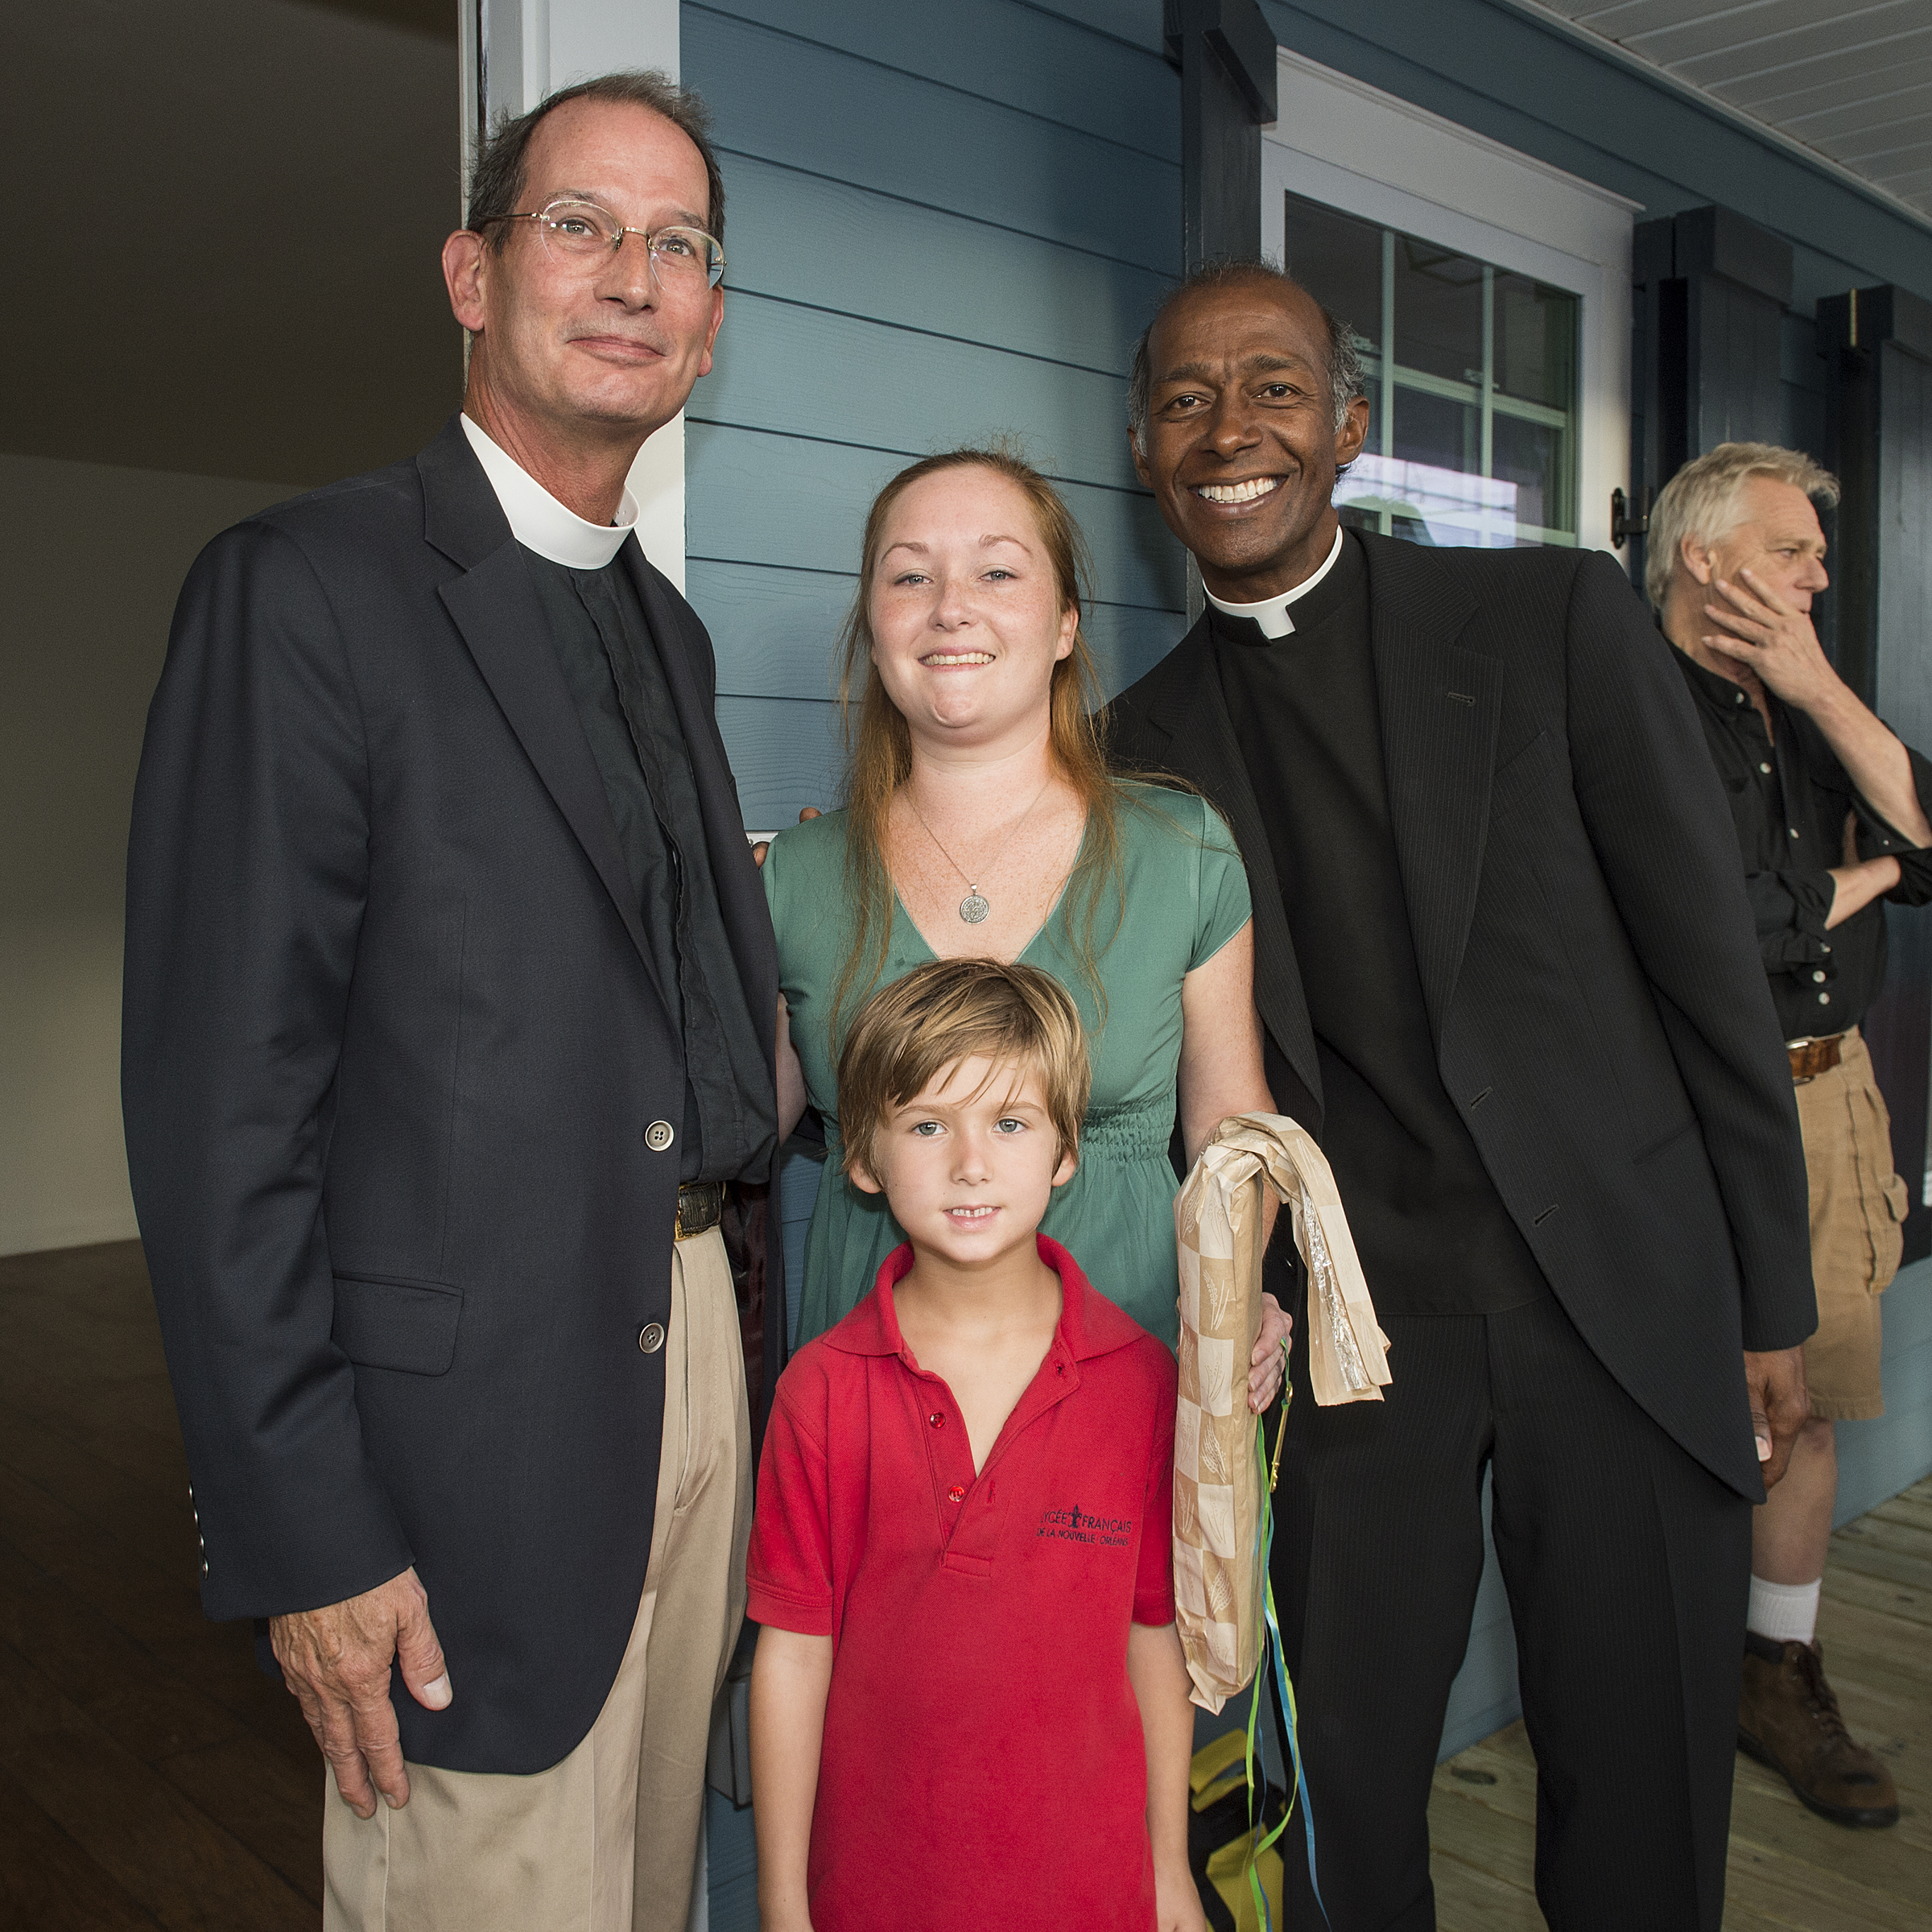 Ashley Kotteman Home Dedication Ceremony on October 21, 2015, at 8501 Oleander Street in New Orleans, LA. (Erika Goldring Photo)